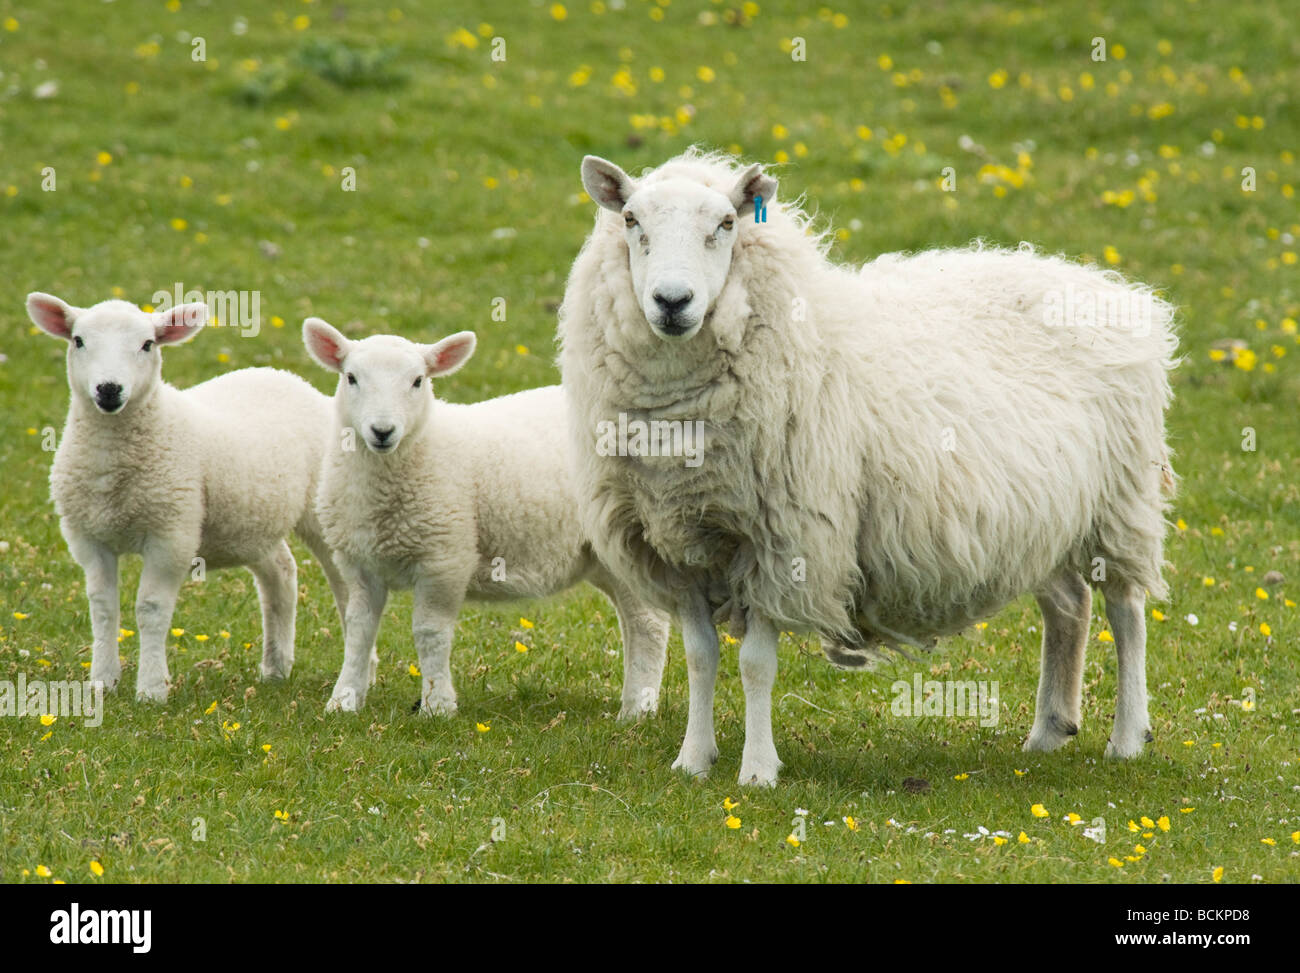 Sheep, Ewe with Lambs, June, Monach Isles, Outer Hebrides, Scotland - Stock Image